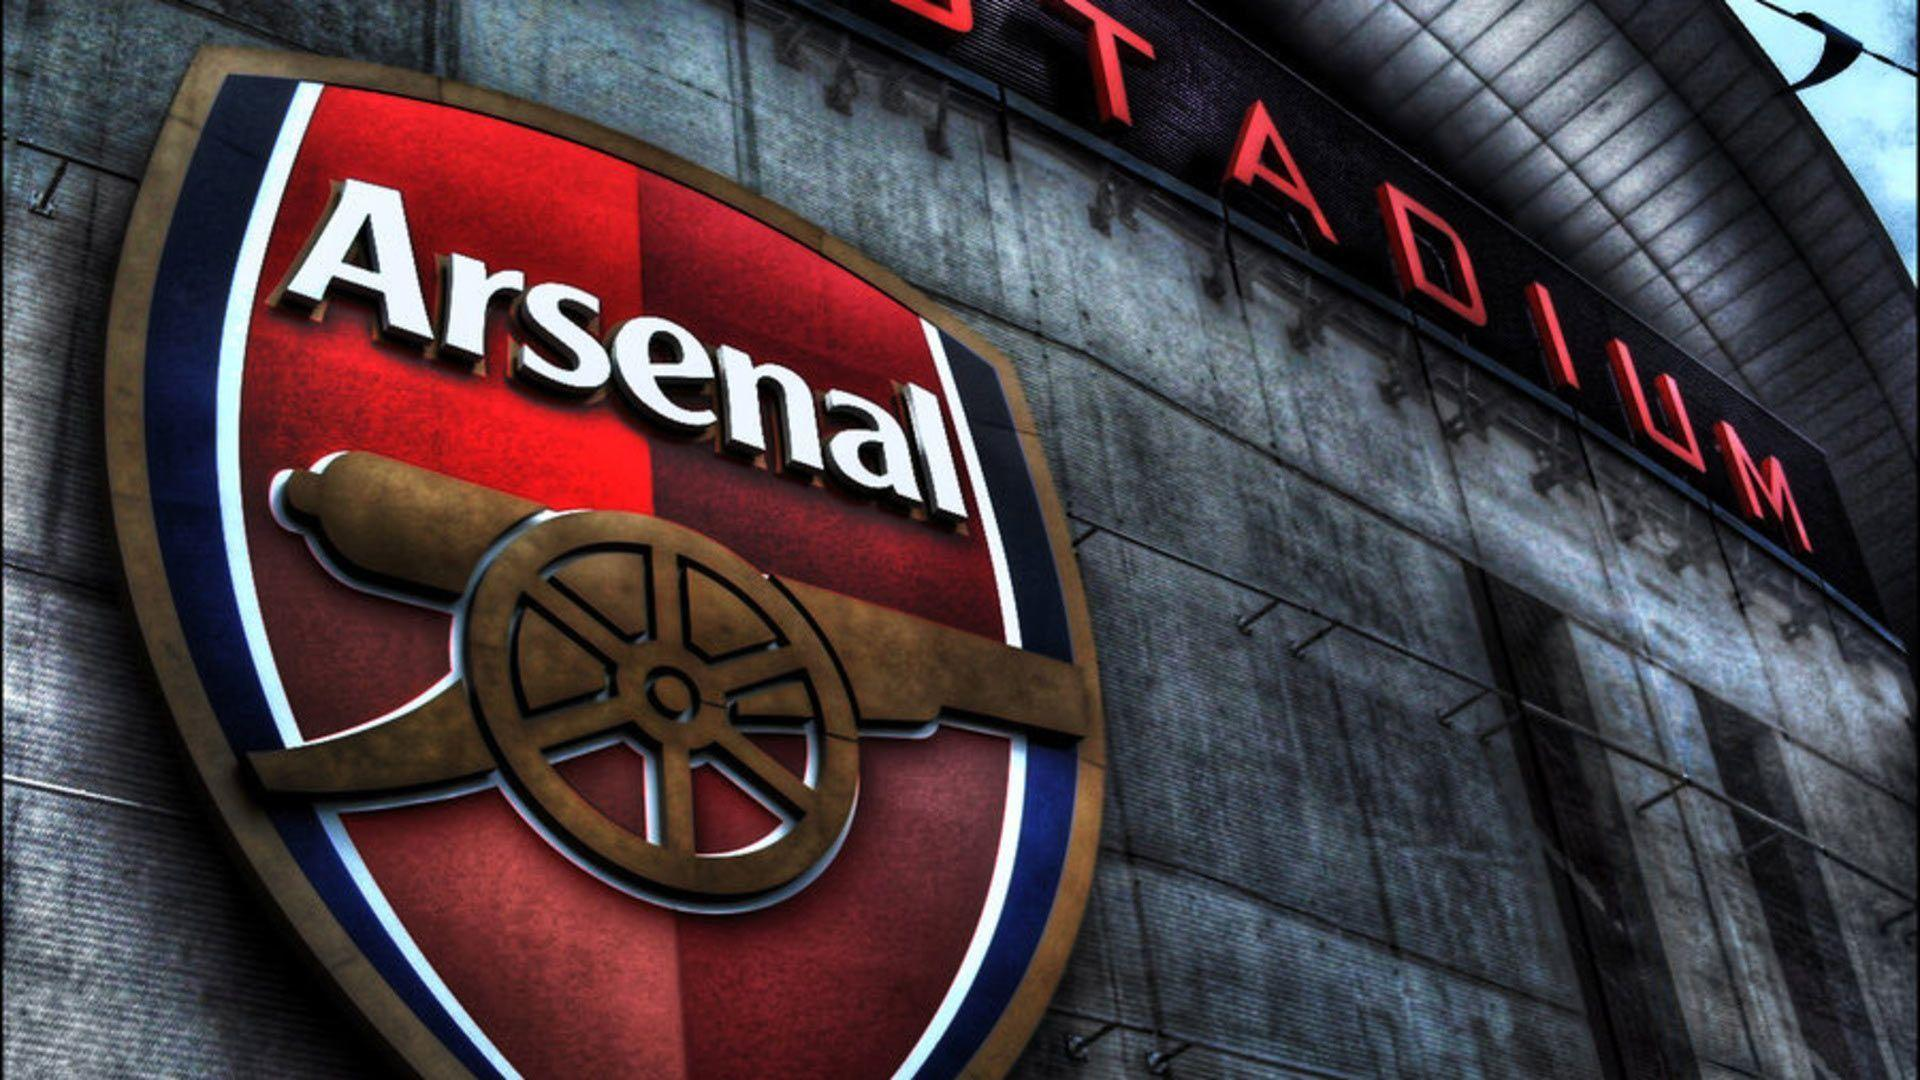 Arsenal Best HD Wallpapers - HD 1920x1080p wallpaper download